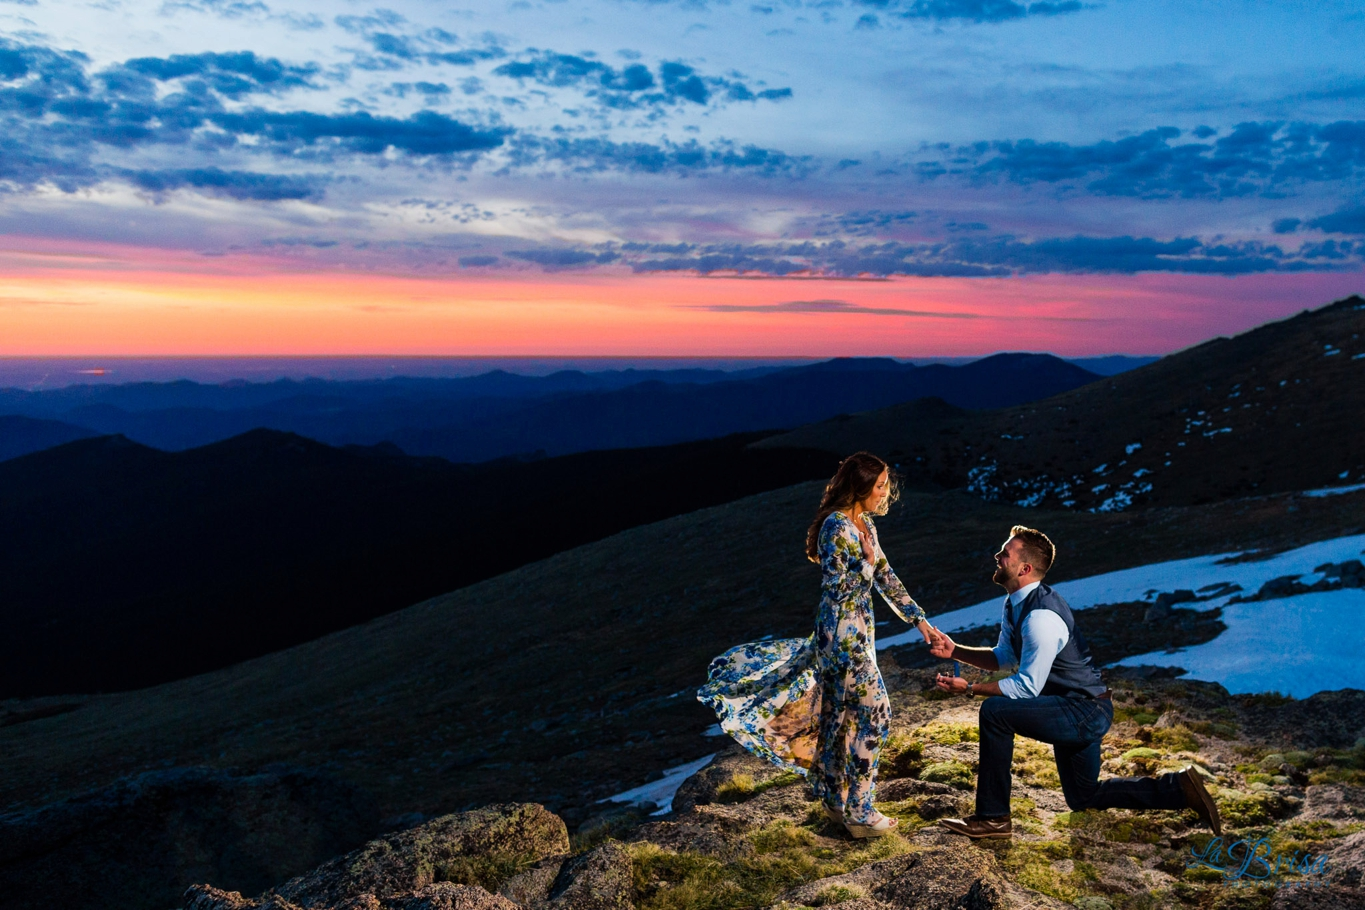 Kylee and Gil's Wedding Proposal Story | Mt  Evans, Colorado